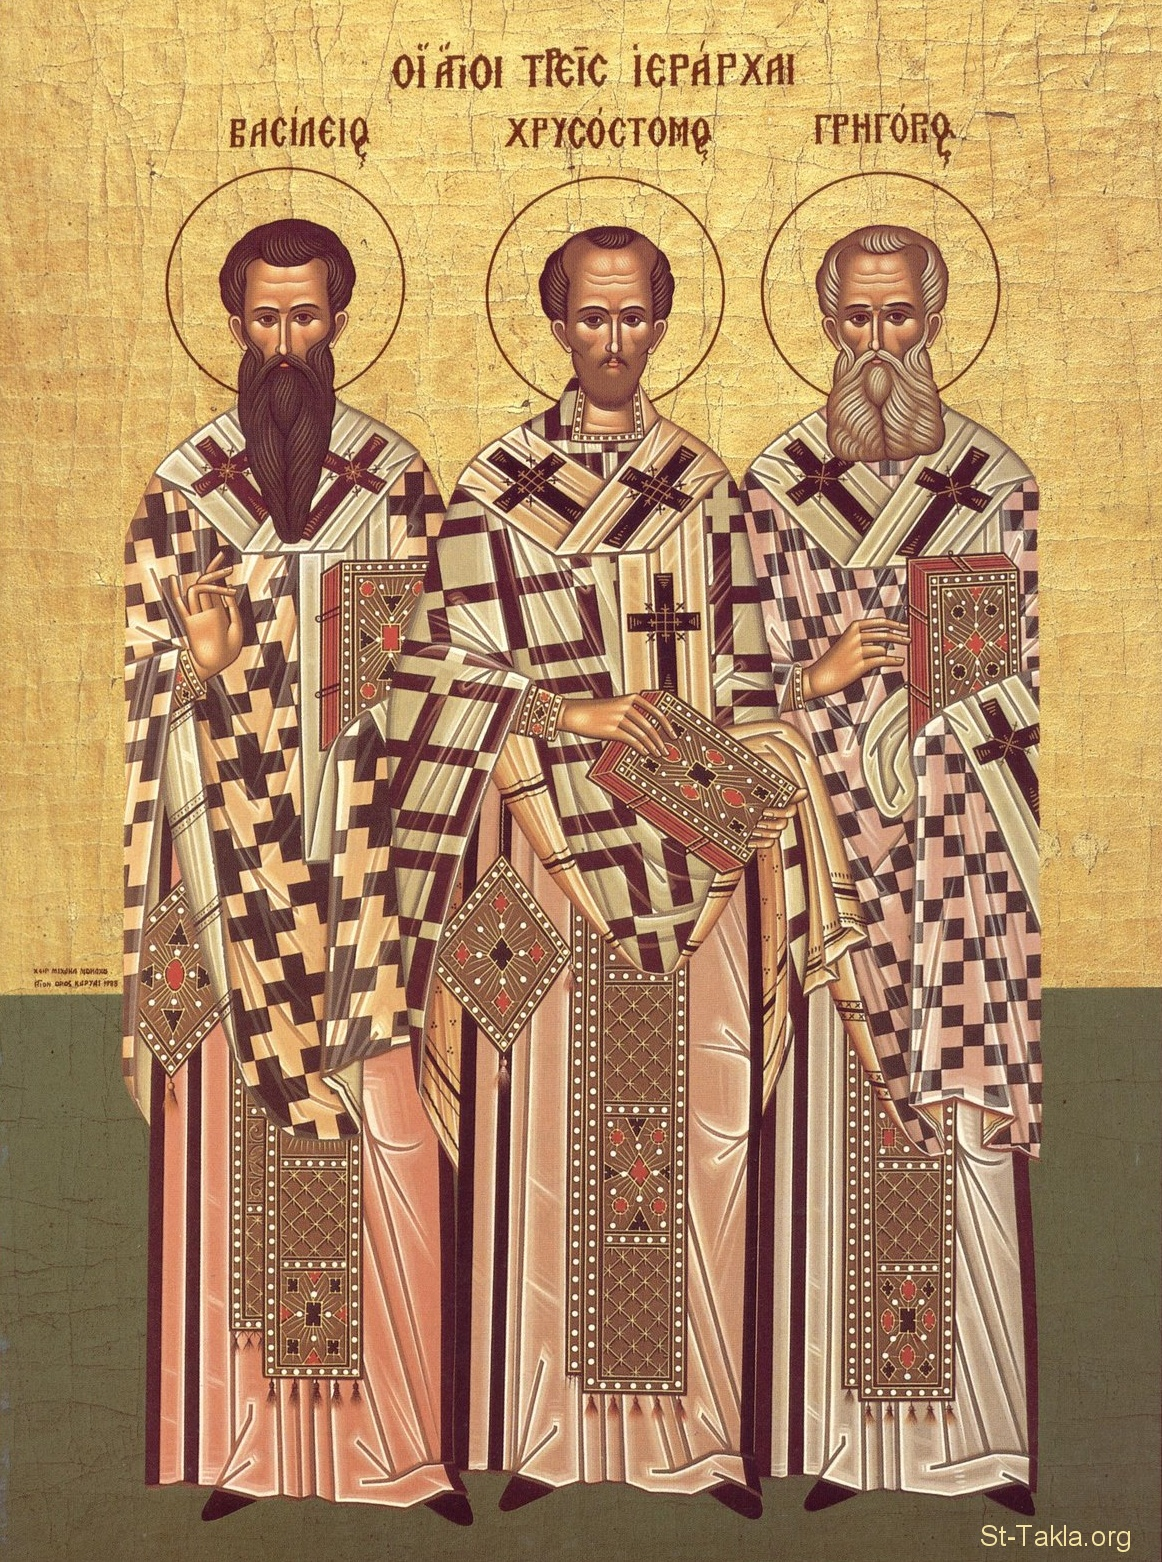 St-Takla.org Image: Icon of the Three Holy Hierarchs - Sts. Basil the Great, John Chrysostom and Gregory the Theologian (left to right) ���� �� ���� ������ ����: ������ ���� ������ ������: (�� ������ ��� ������) ������ �������� ������ - ������ ����� ���� ���� - ������ ��������� ��������